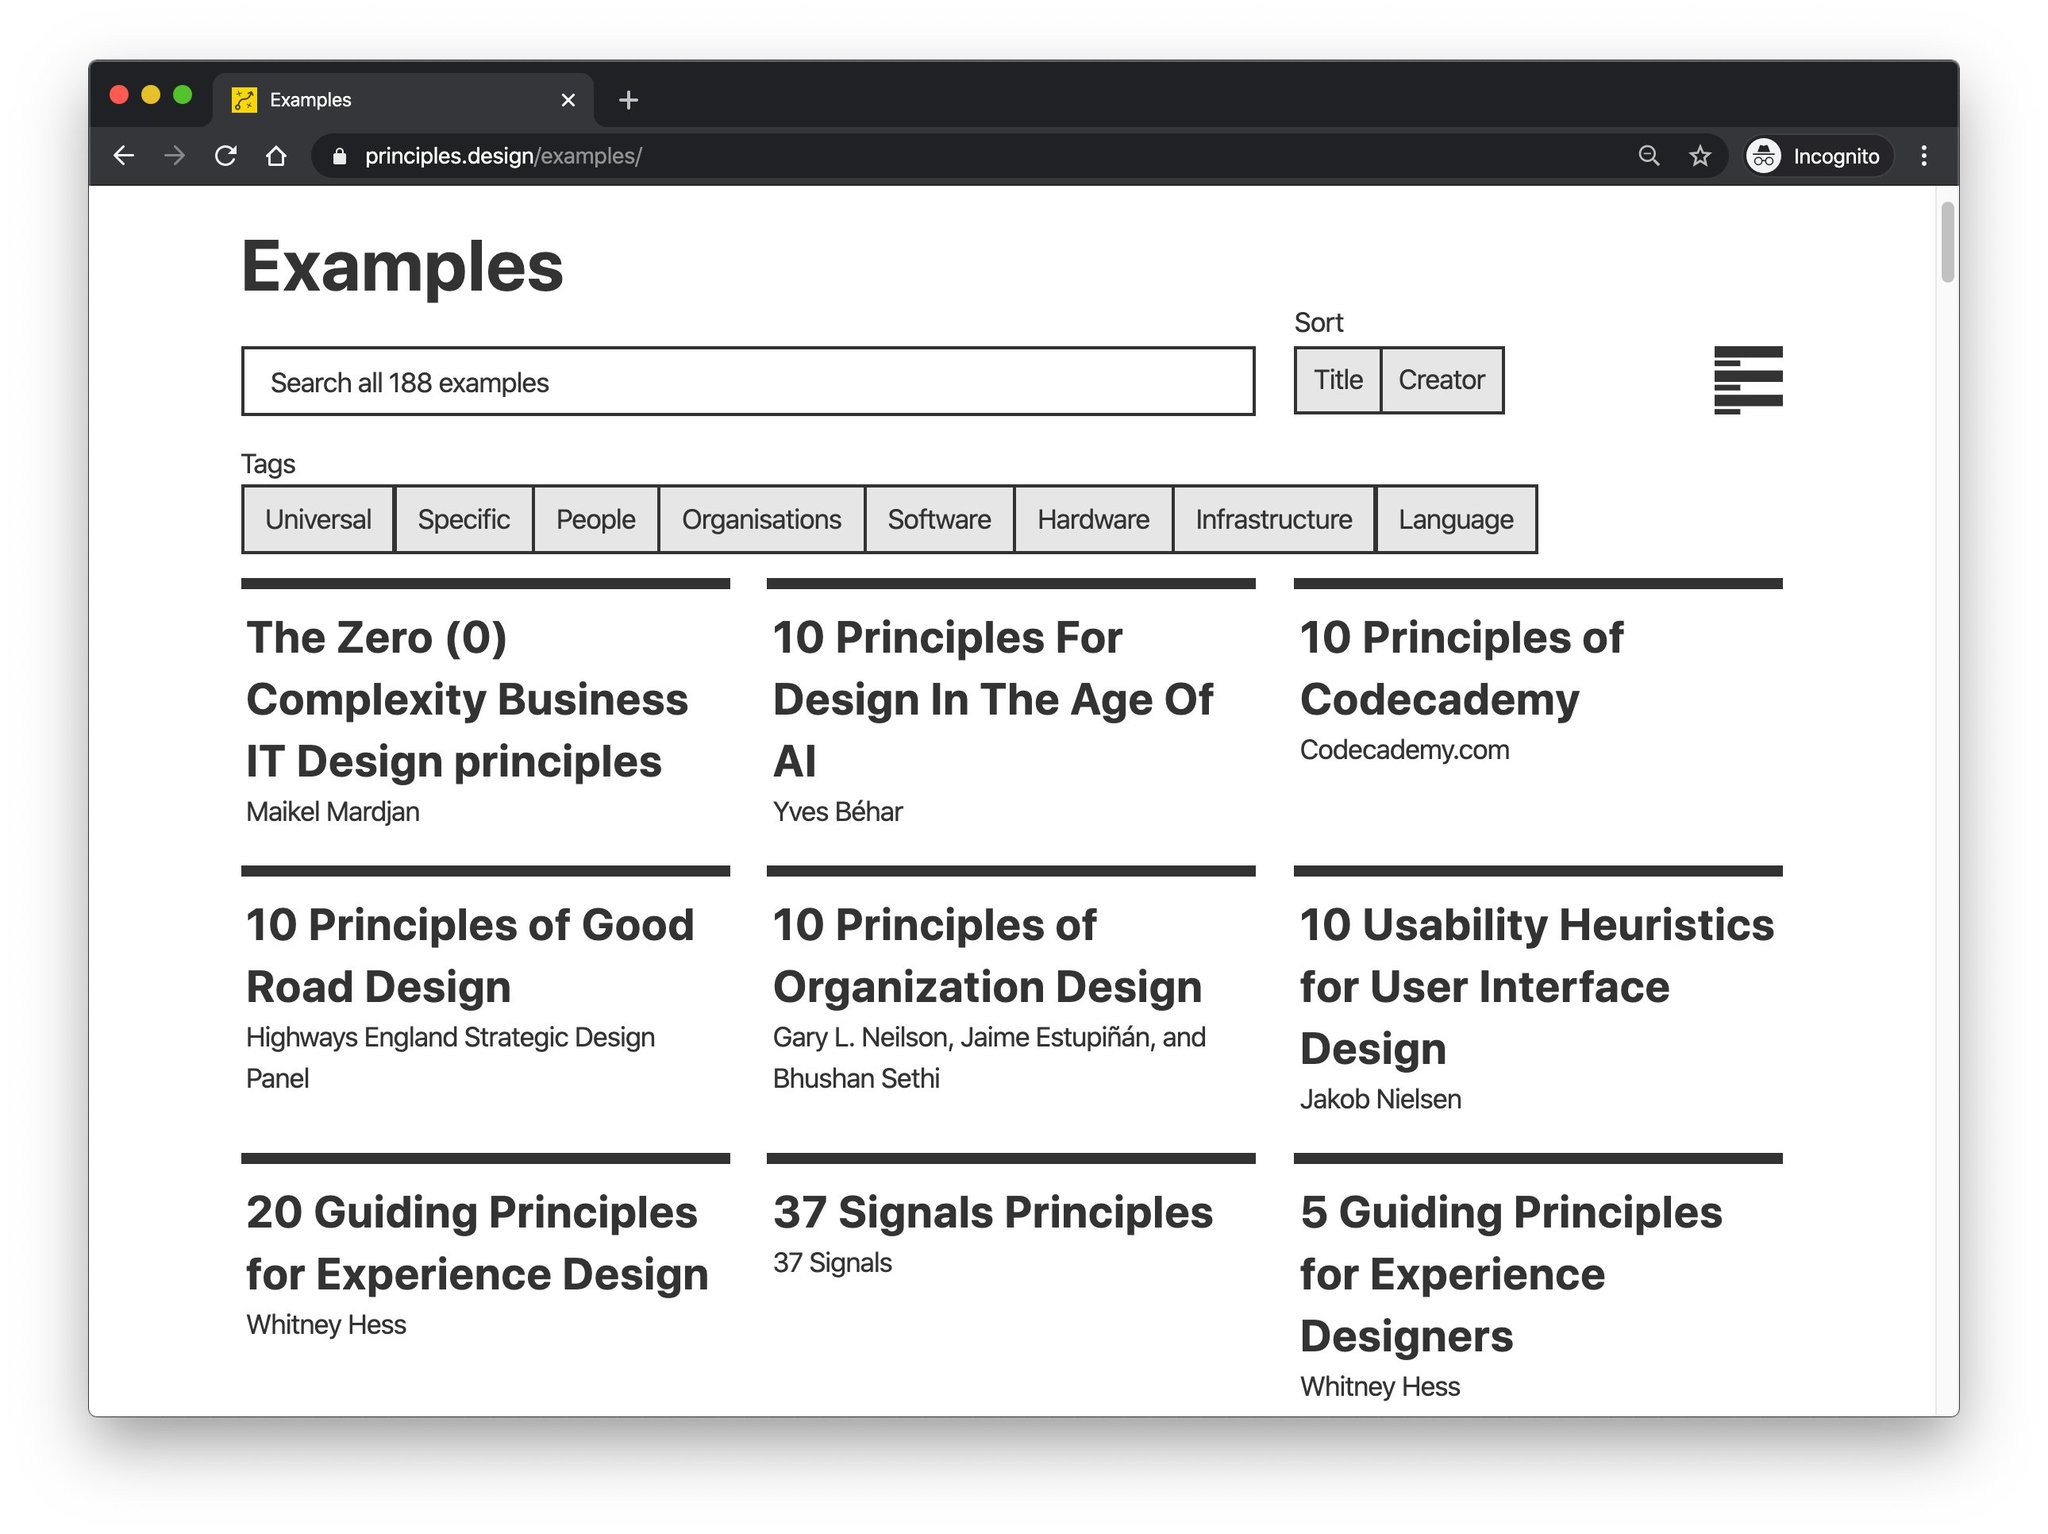 Umar Hansa On Twitter Design Principles Https T Co Yianeacmwi An Excellent Collection Of Design Principles And Methods Laid Out Clearly In An Easy To Use Website Will Defo Be Referring Back To These